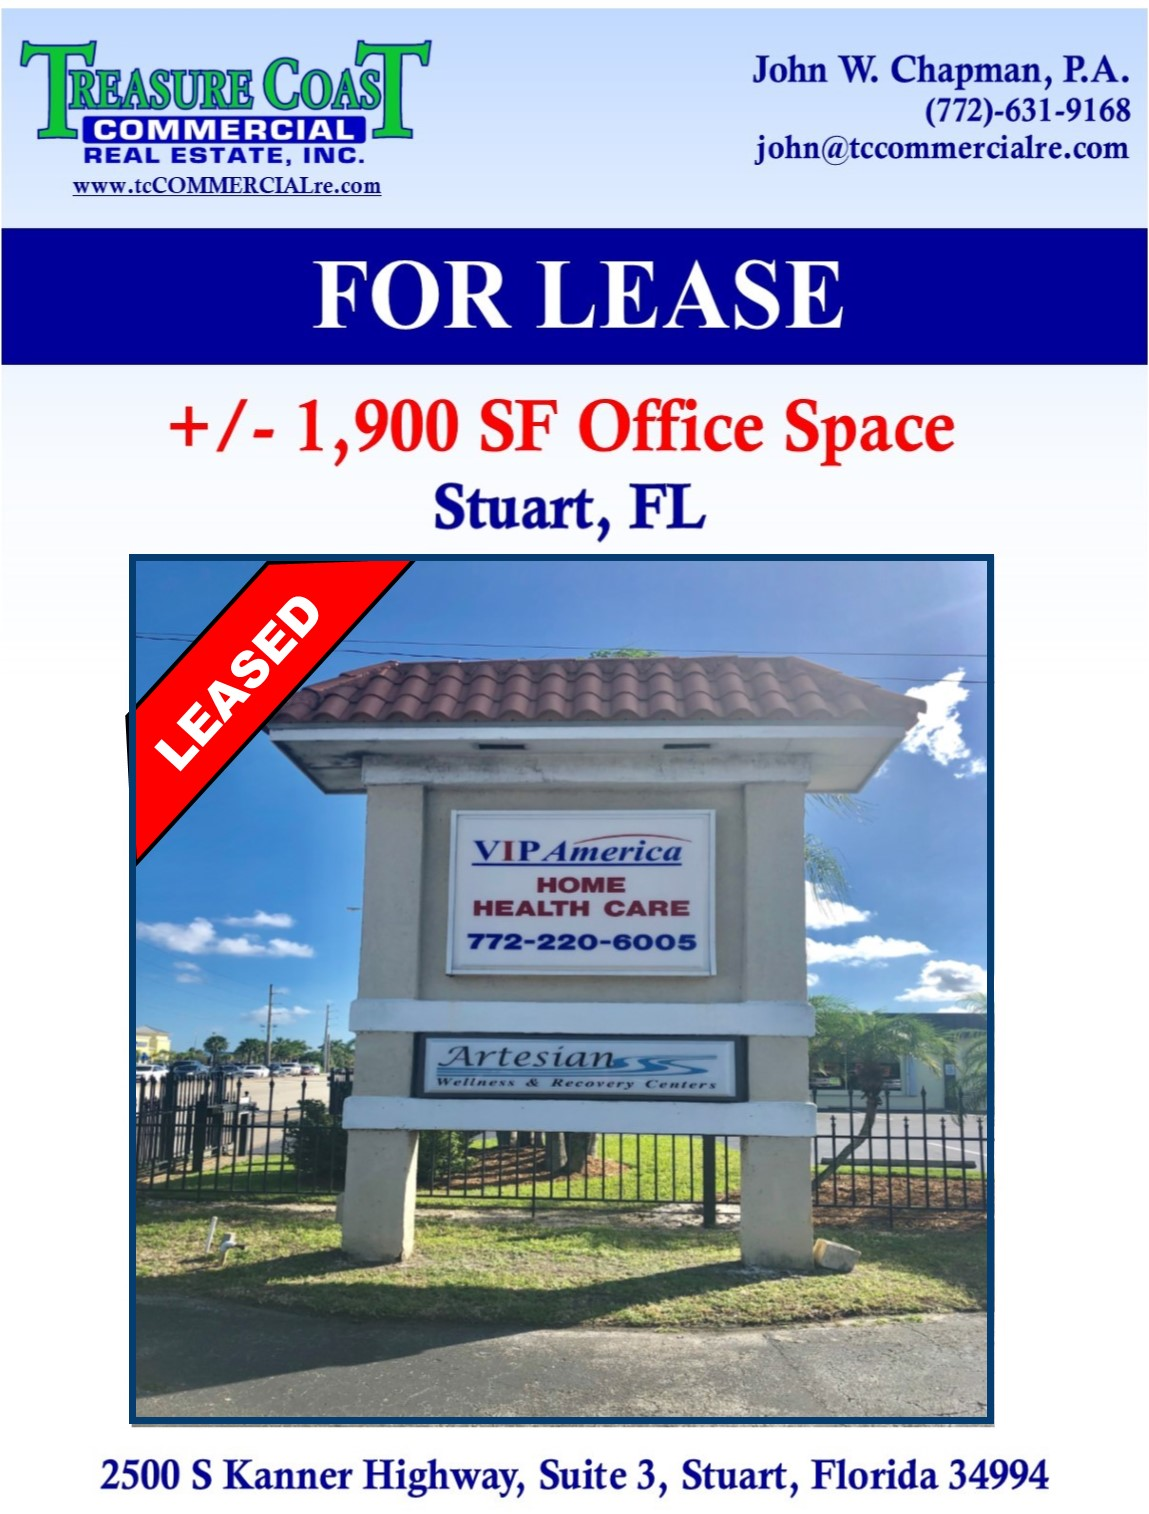 MEDICAL OFFICE LEASED